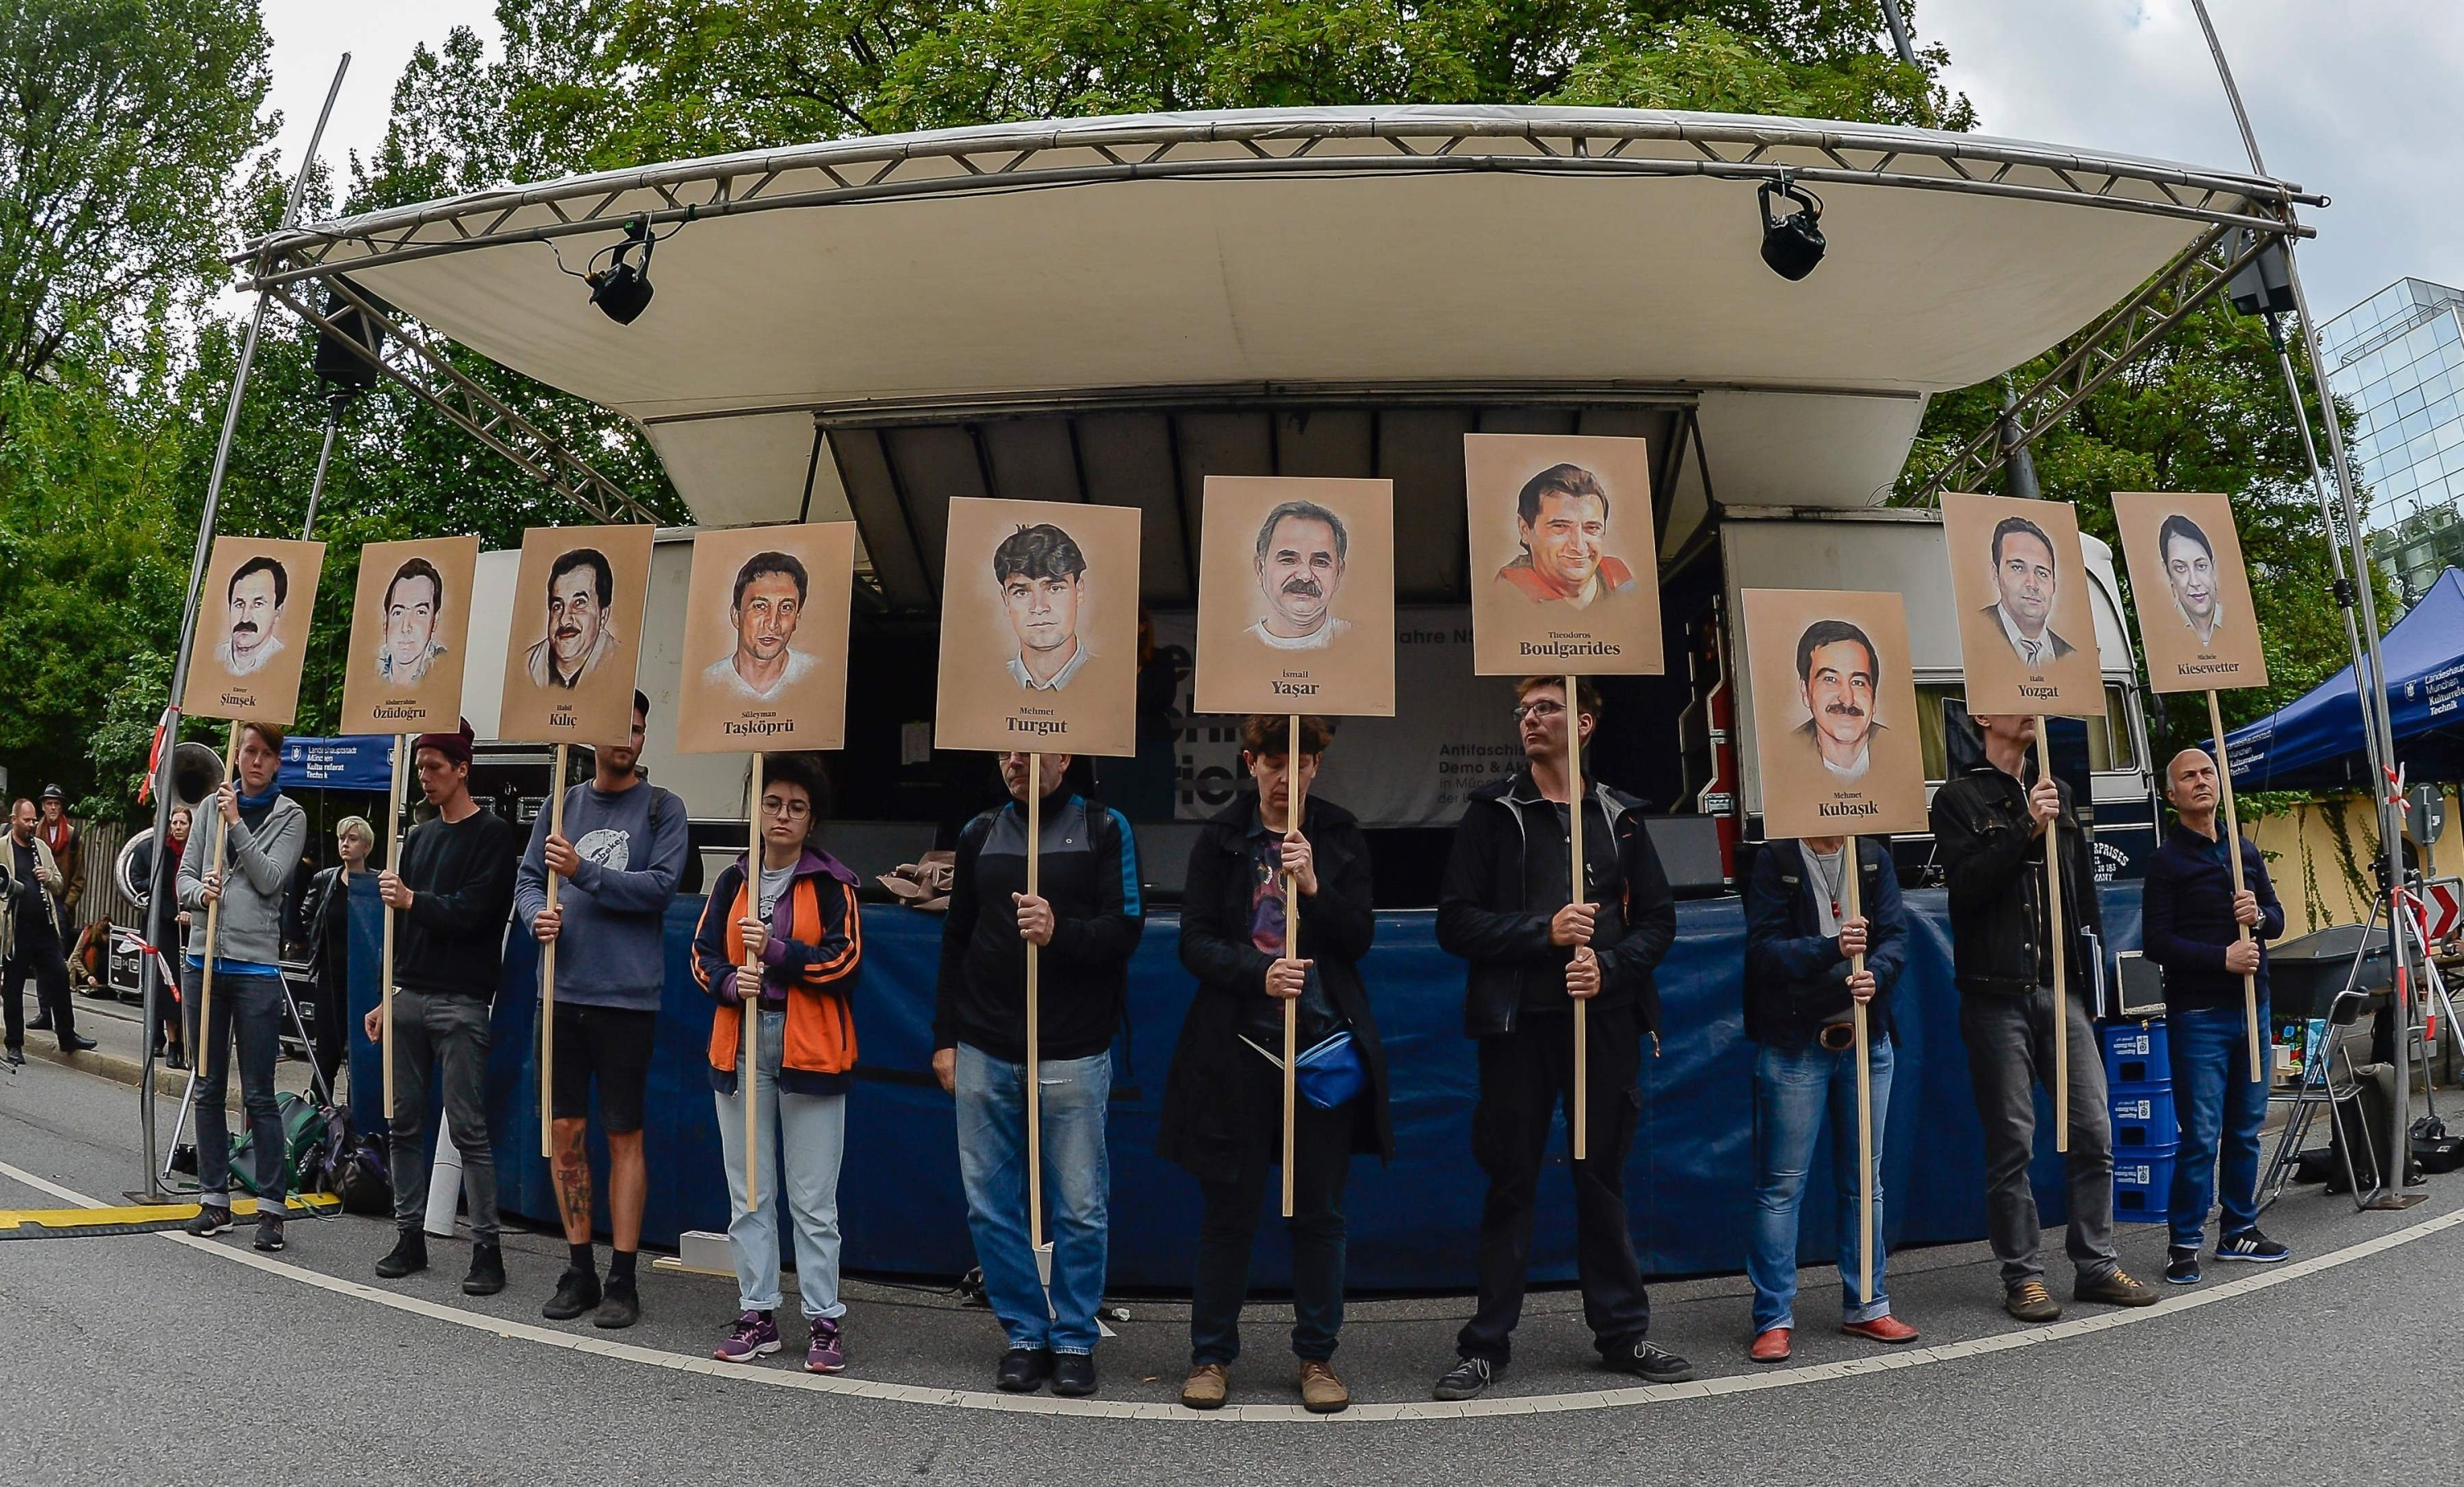 Protesters hold up signs with pictures of the victims of the neo-Nazi cell National Socialist Underground (NSU) before the proclamation of a sentence in the trial against Beate Zschaepe, the only surviving member of the NSU, which was behind a string of racist murders, in Munich, Germany, July 11, 2018. (AFP Photo)